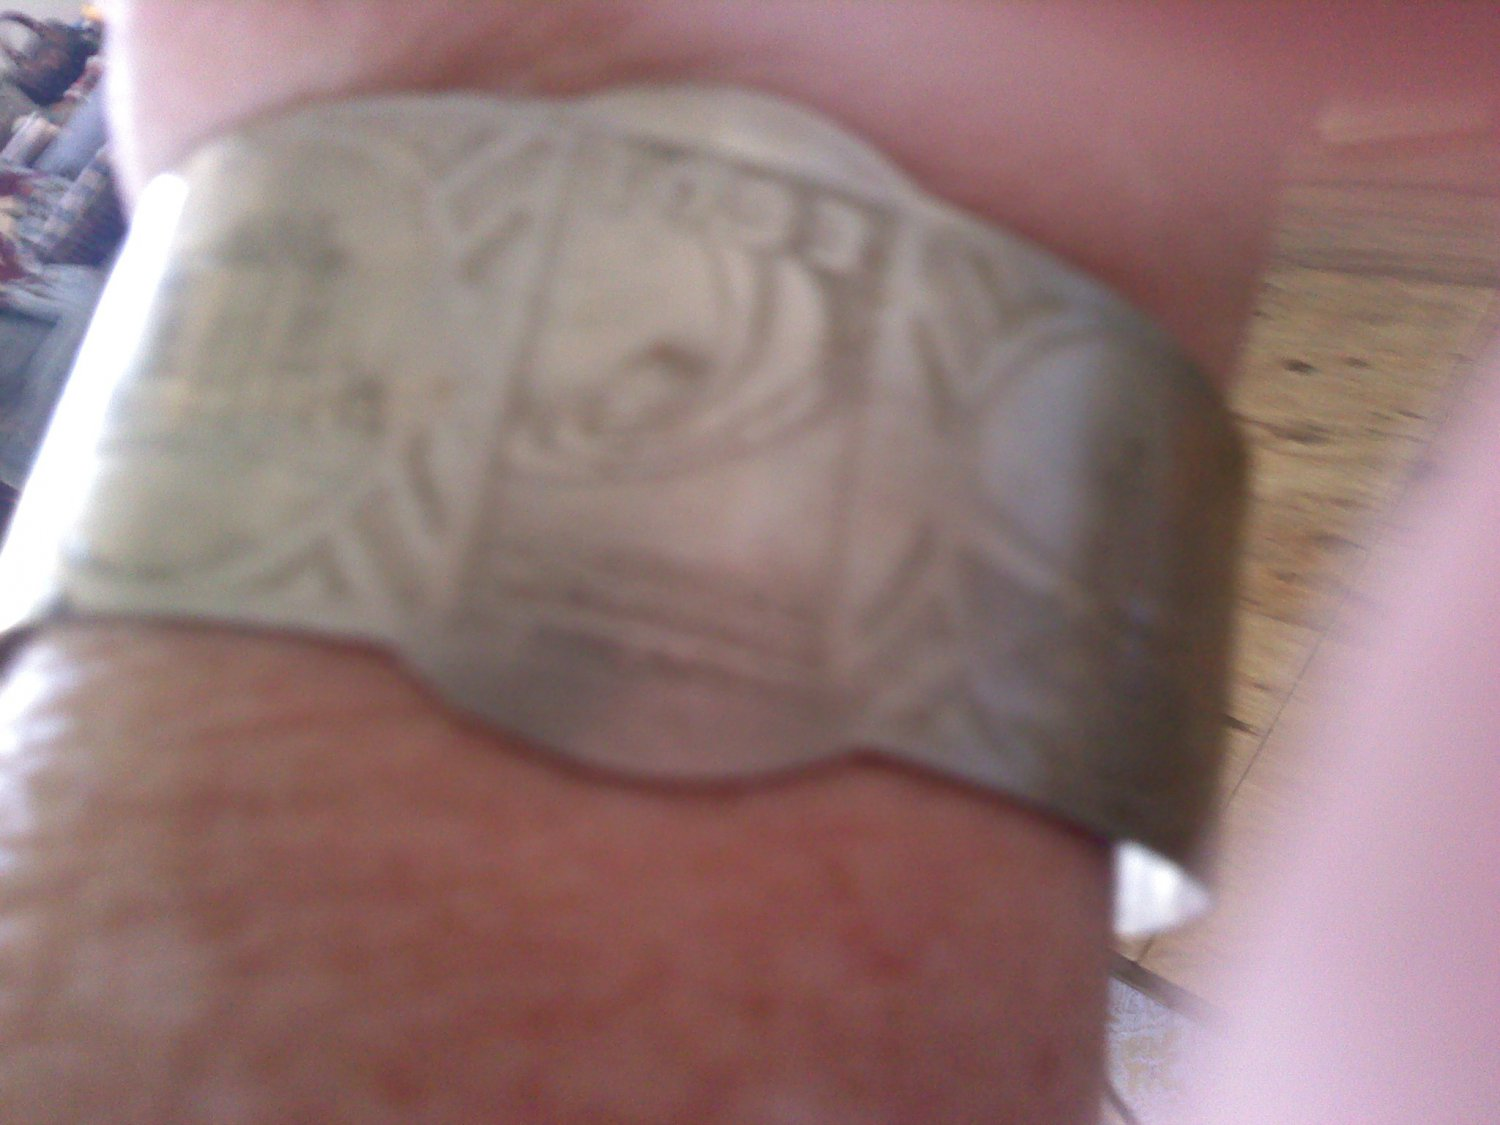 1933 CHICAGO WORLDS FAIR BRACELET